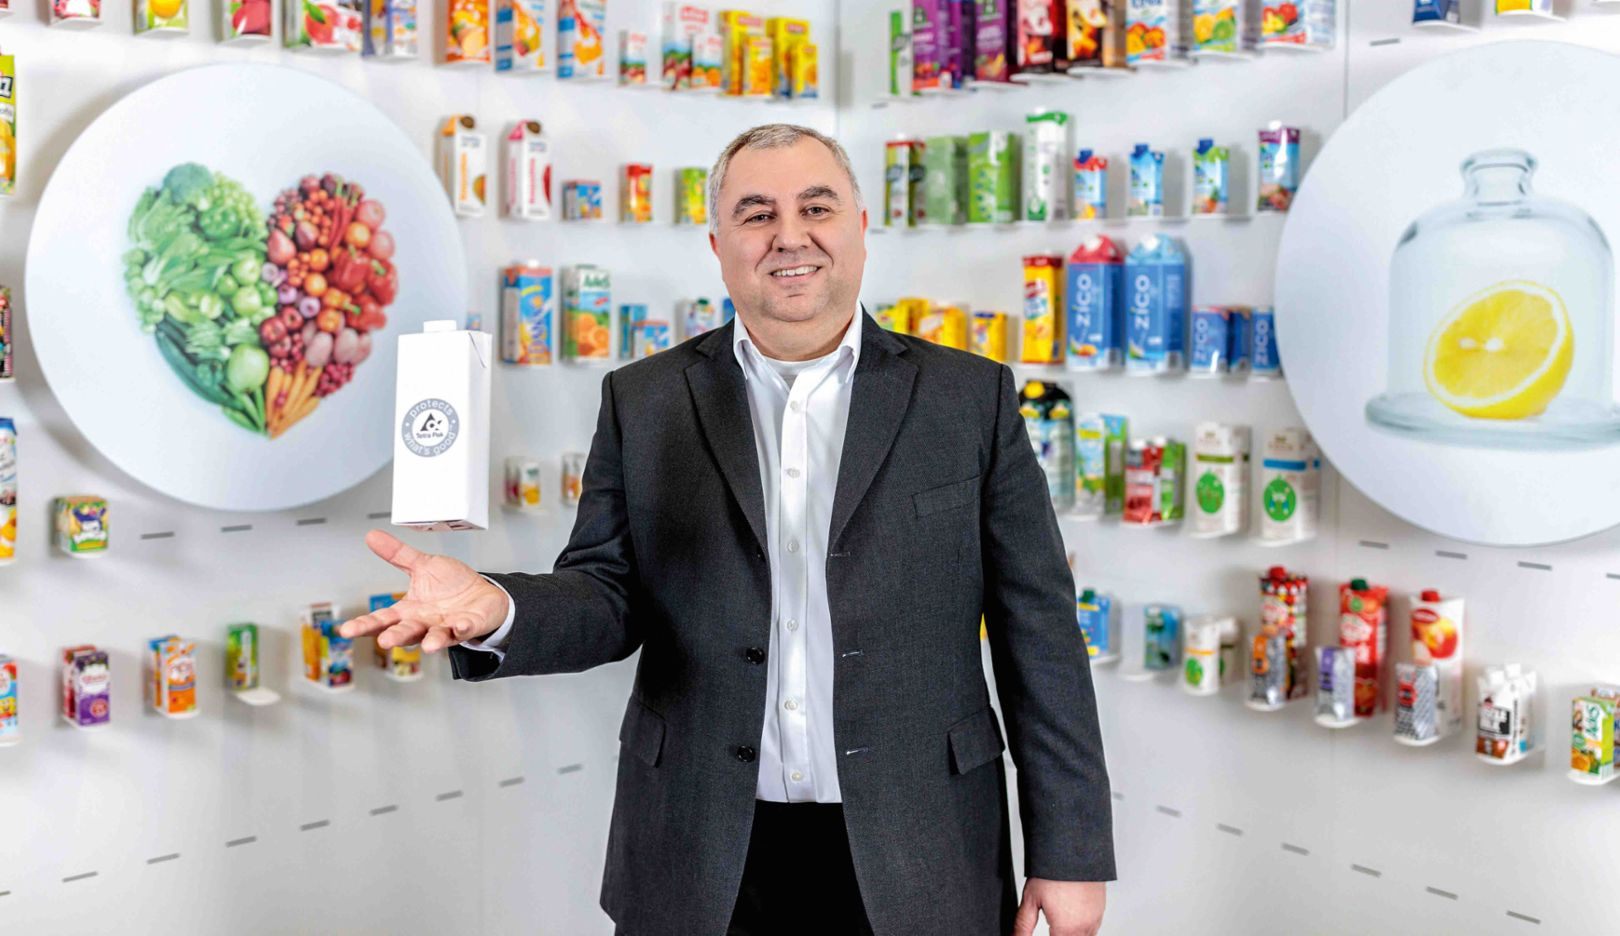 Roberto Franchitti, Vice President of Research and Development for the Carton Value & Economy division of the Tetra Pak Group, 2018, Porsche Consulting GmbH